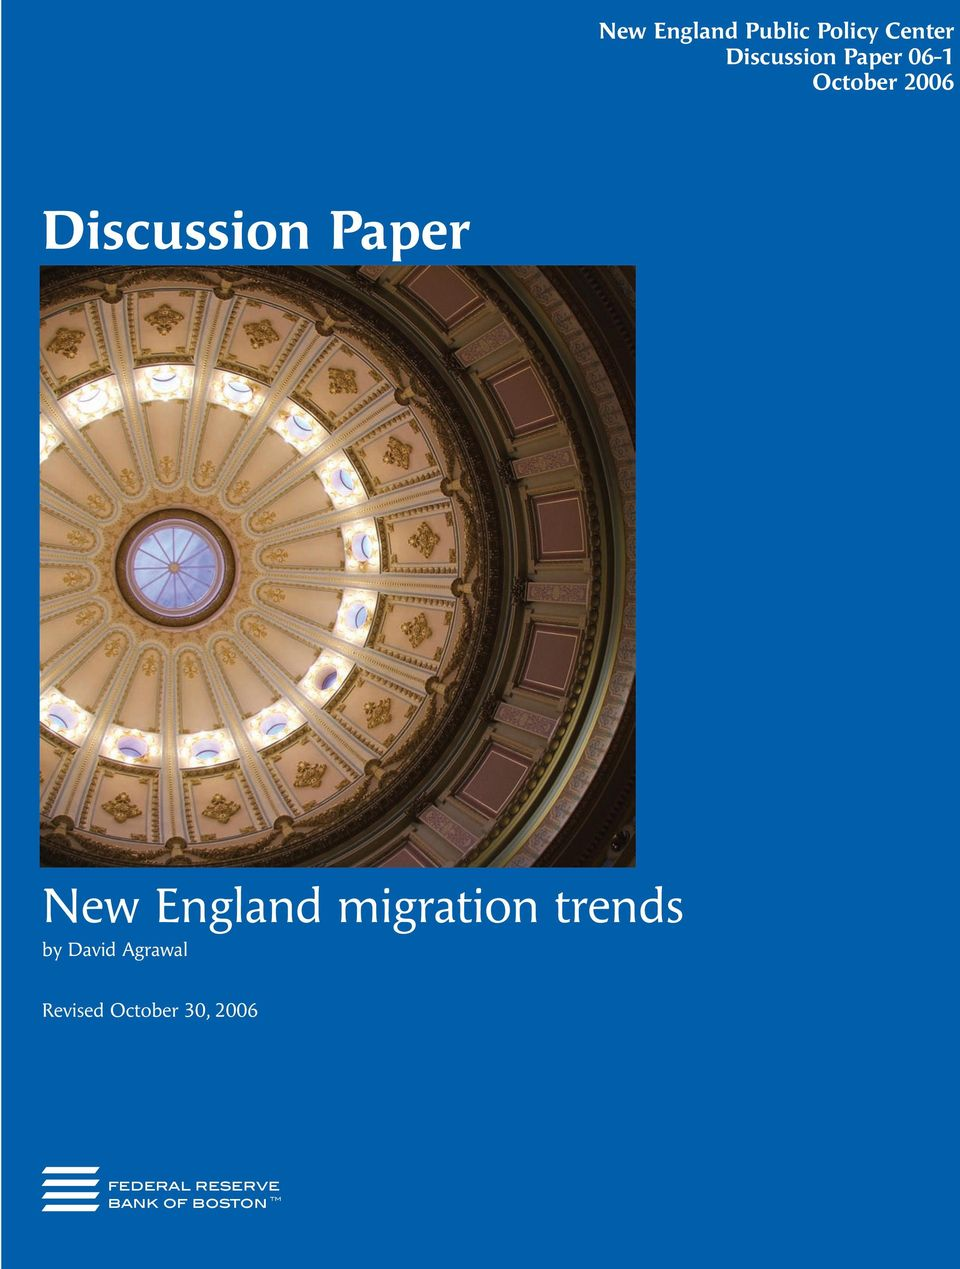 England migration trends by David Agrawal